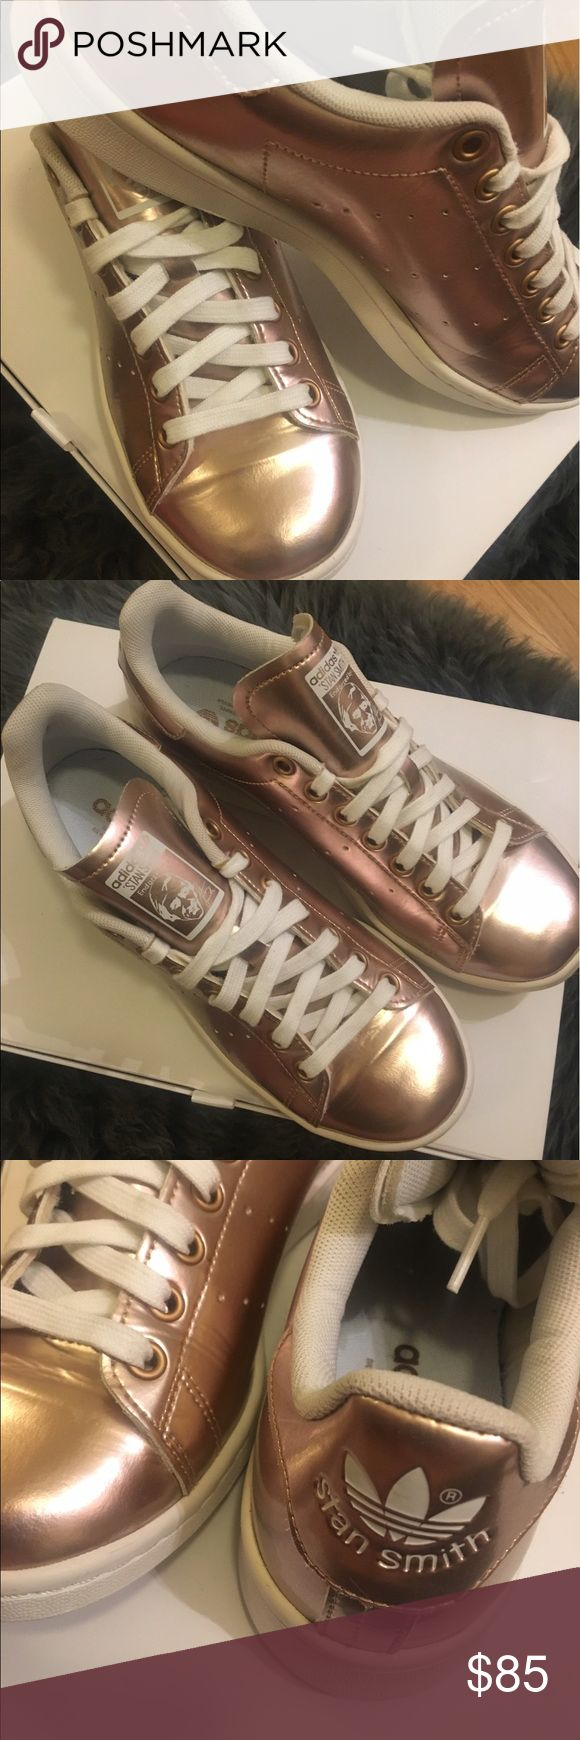 Adidas Original Stan Smith Metallic Gold sneakers Metallic leather upper Lace-up fastening Branded tongue and cuff Padded for comfort Chunky sole Moulded tread Wipe with a damp cloth 100% Real Leather Upper  {worn only once} adidas Shoes Sneakers